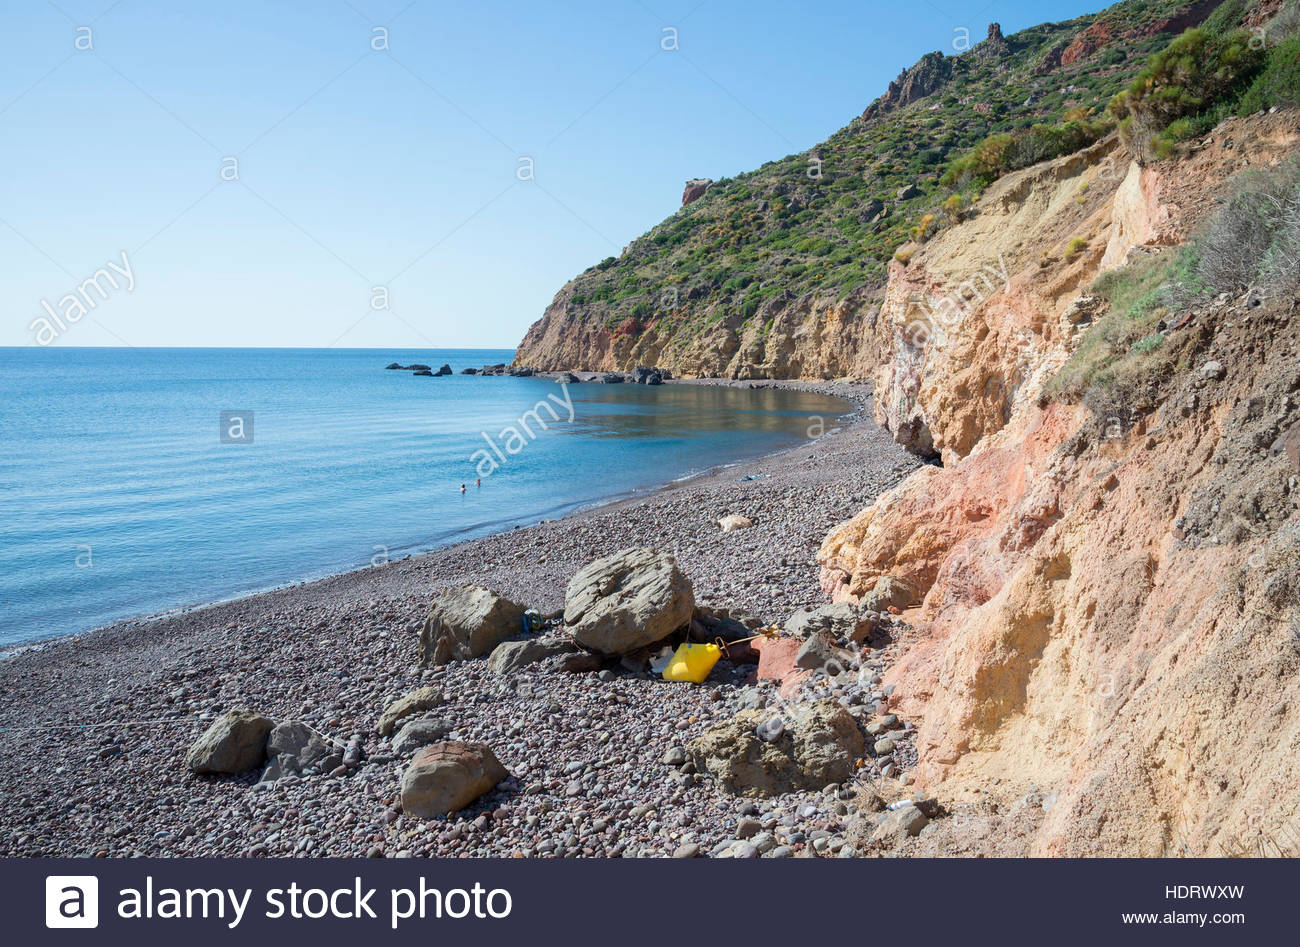 Valle Muria beach,  Lipari, Aeolian Islands, UNESCO World Heritage Site, Sicily, Italy, Mediterranean, Europe - Stock Image